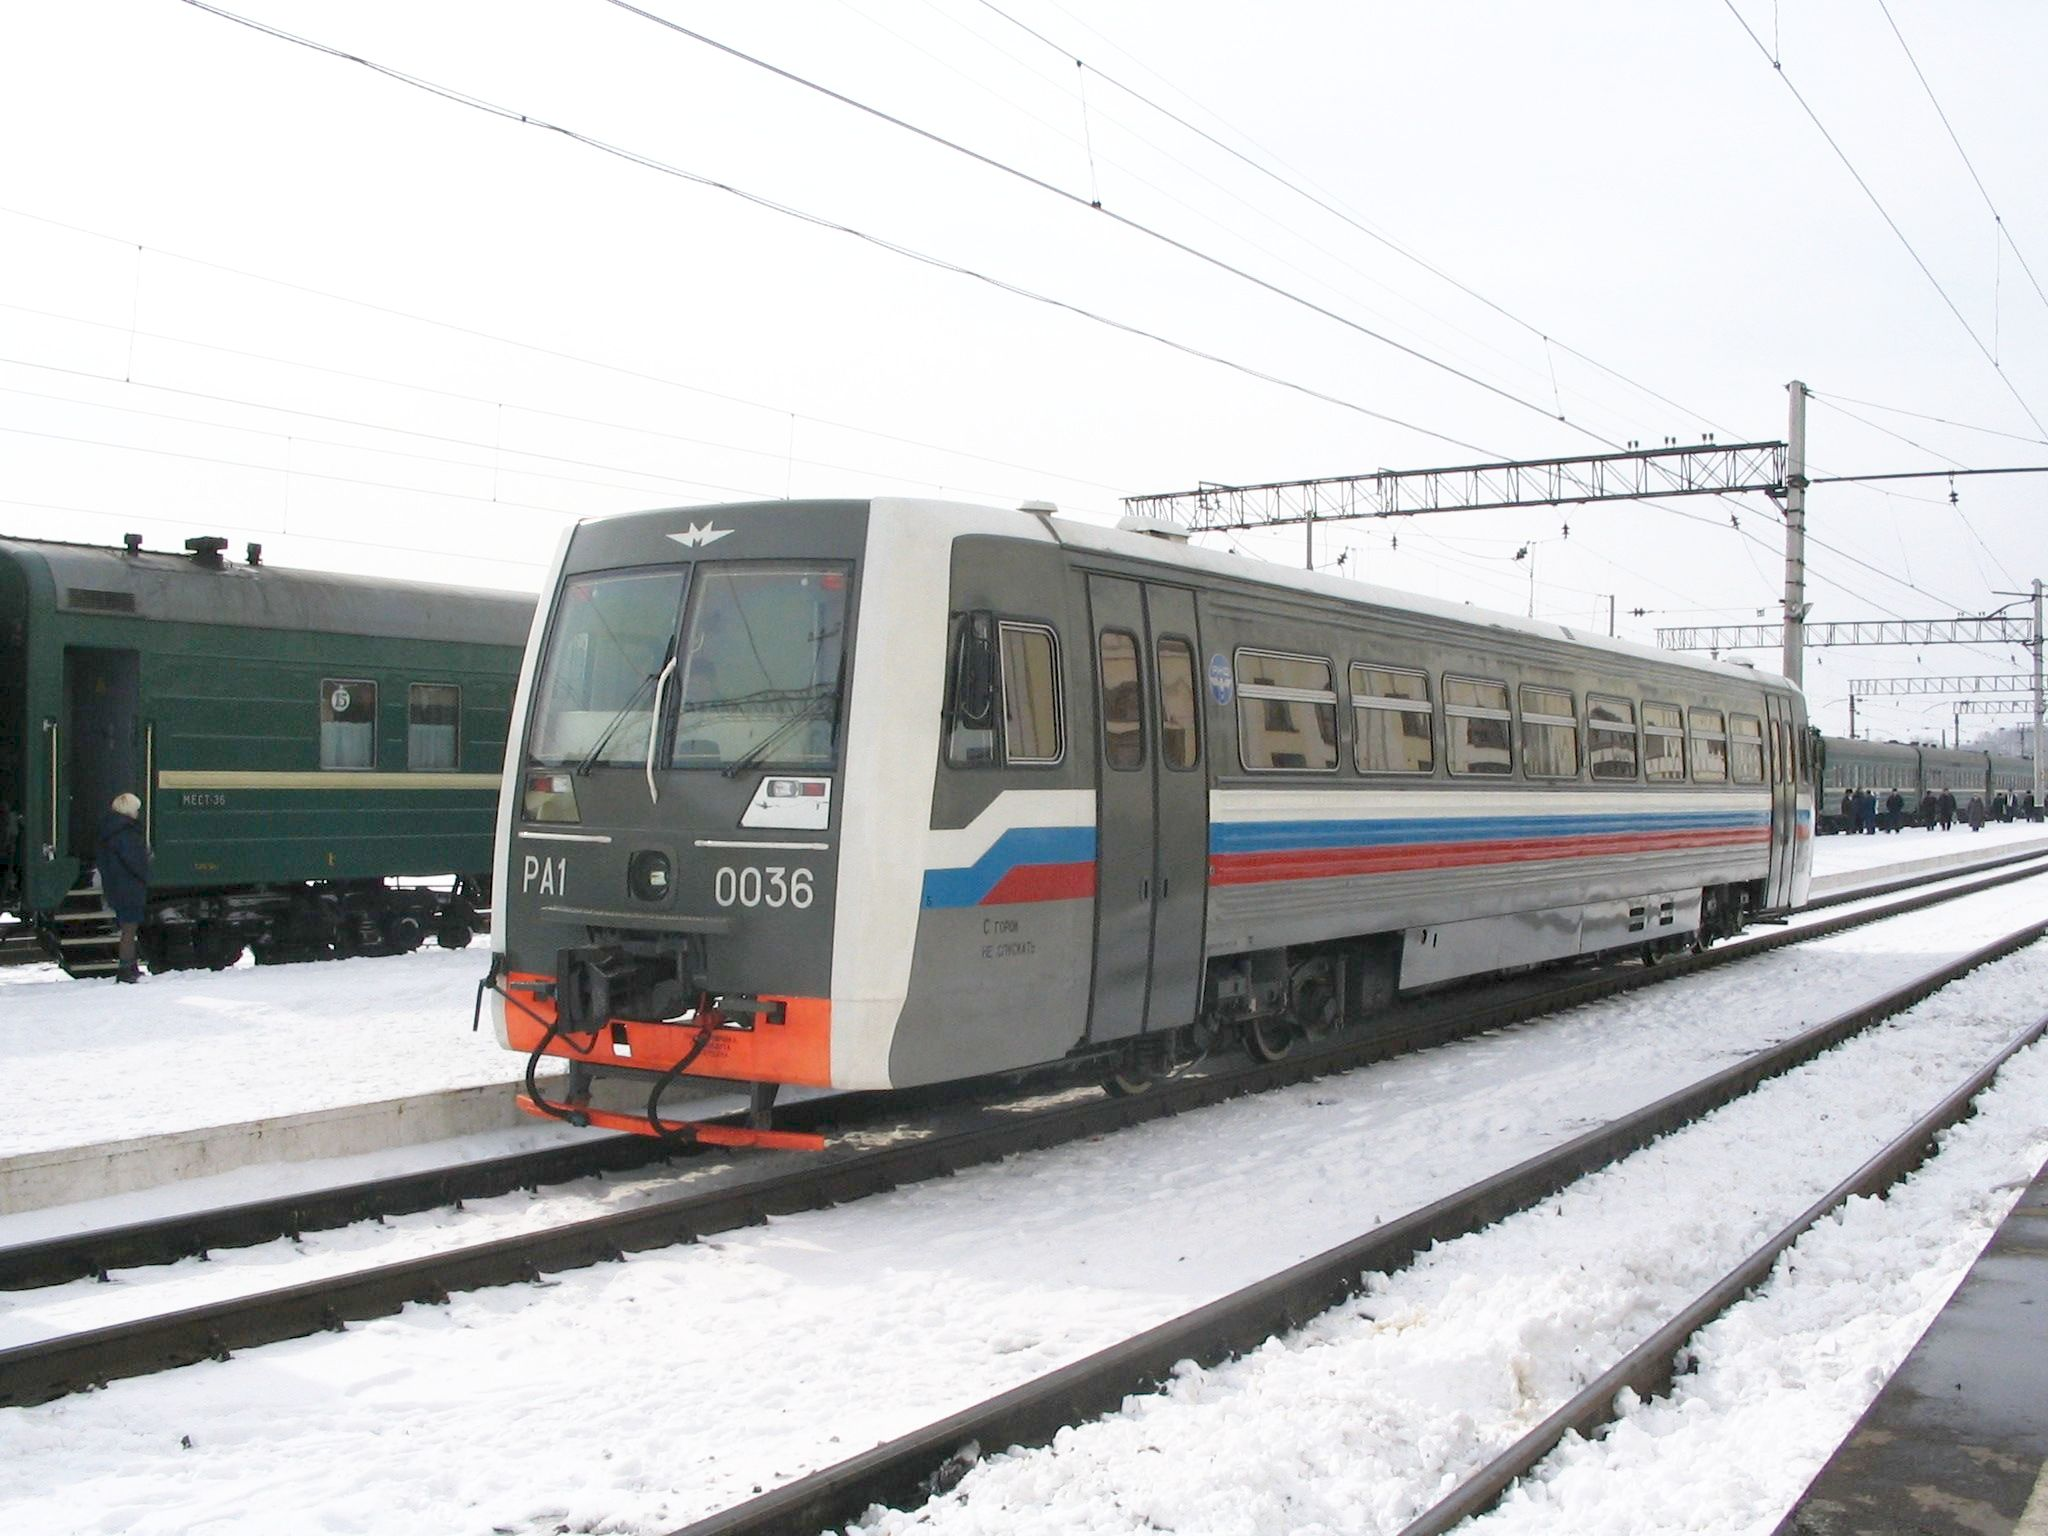 http://upload.wikimedia.org/wikipedia/commons/0/04/RailBus_in_Tomsk.jpg